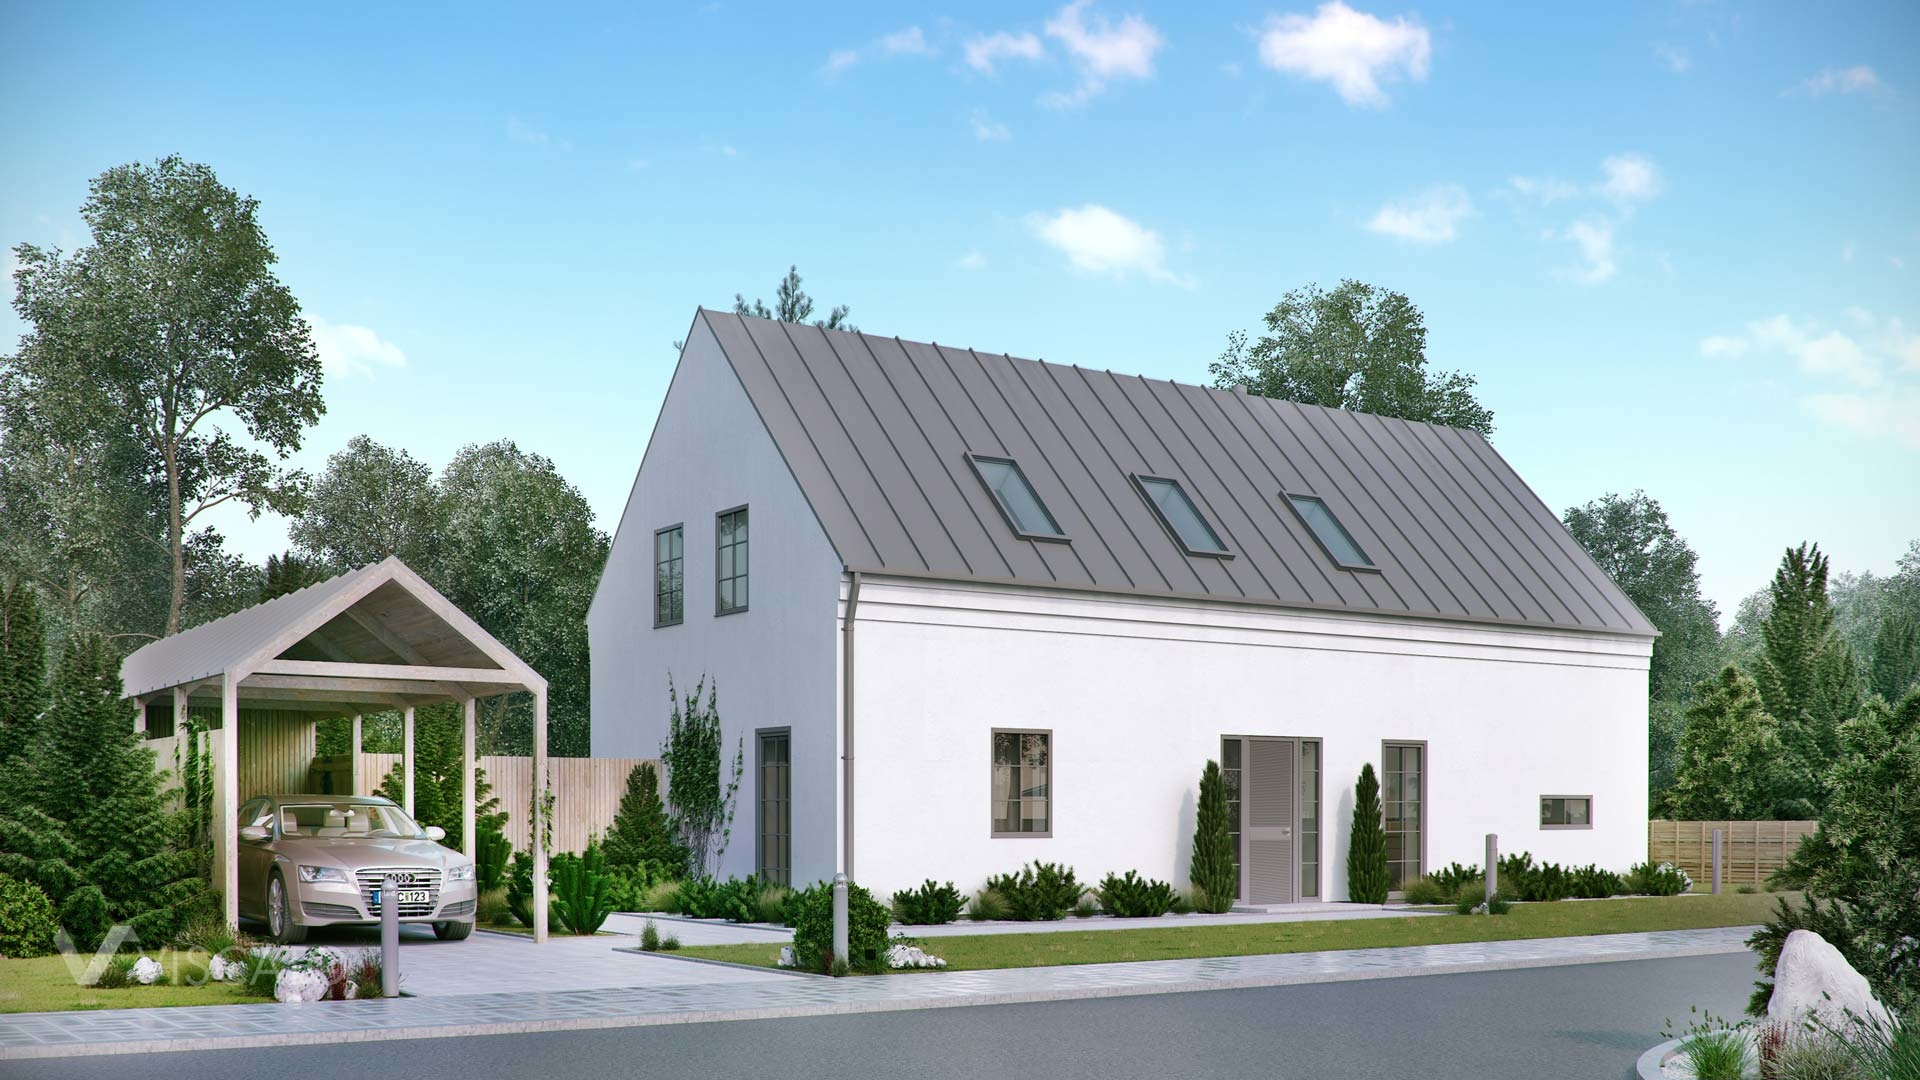 architectural visualization of a single family estate in Sweden